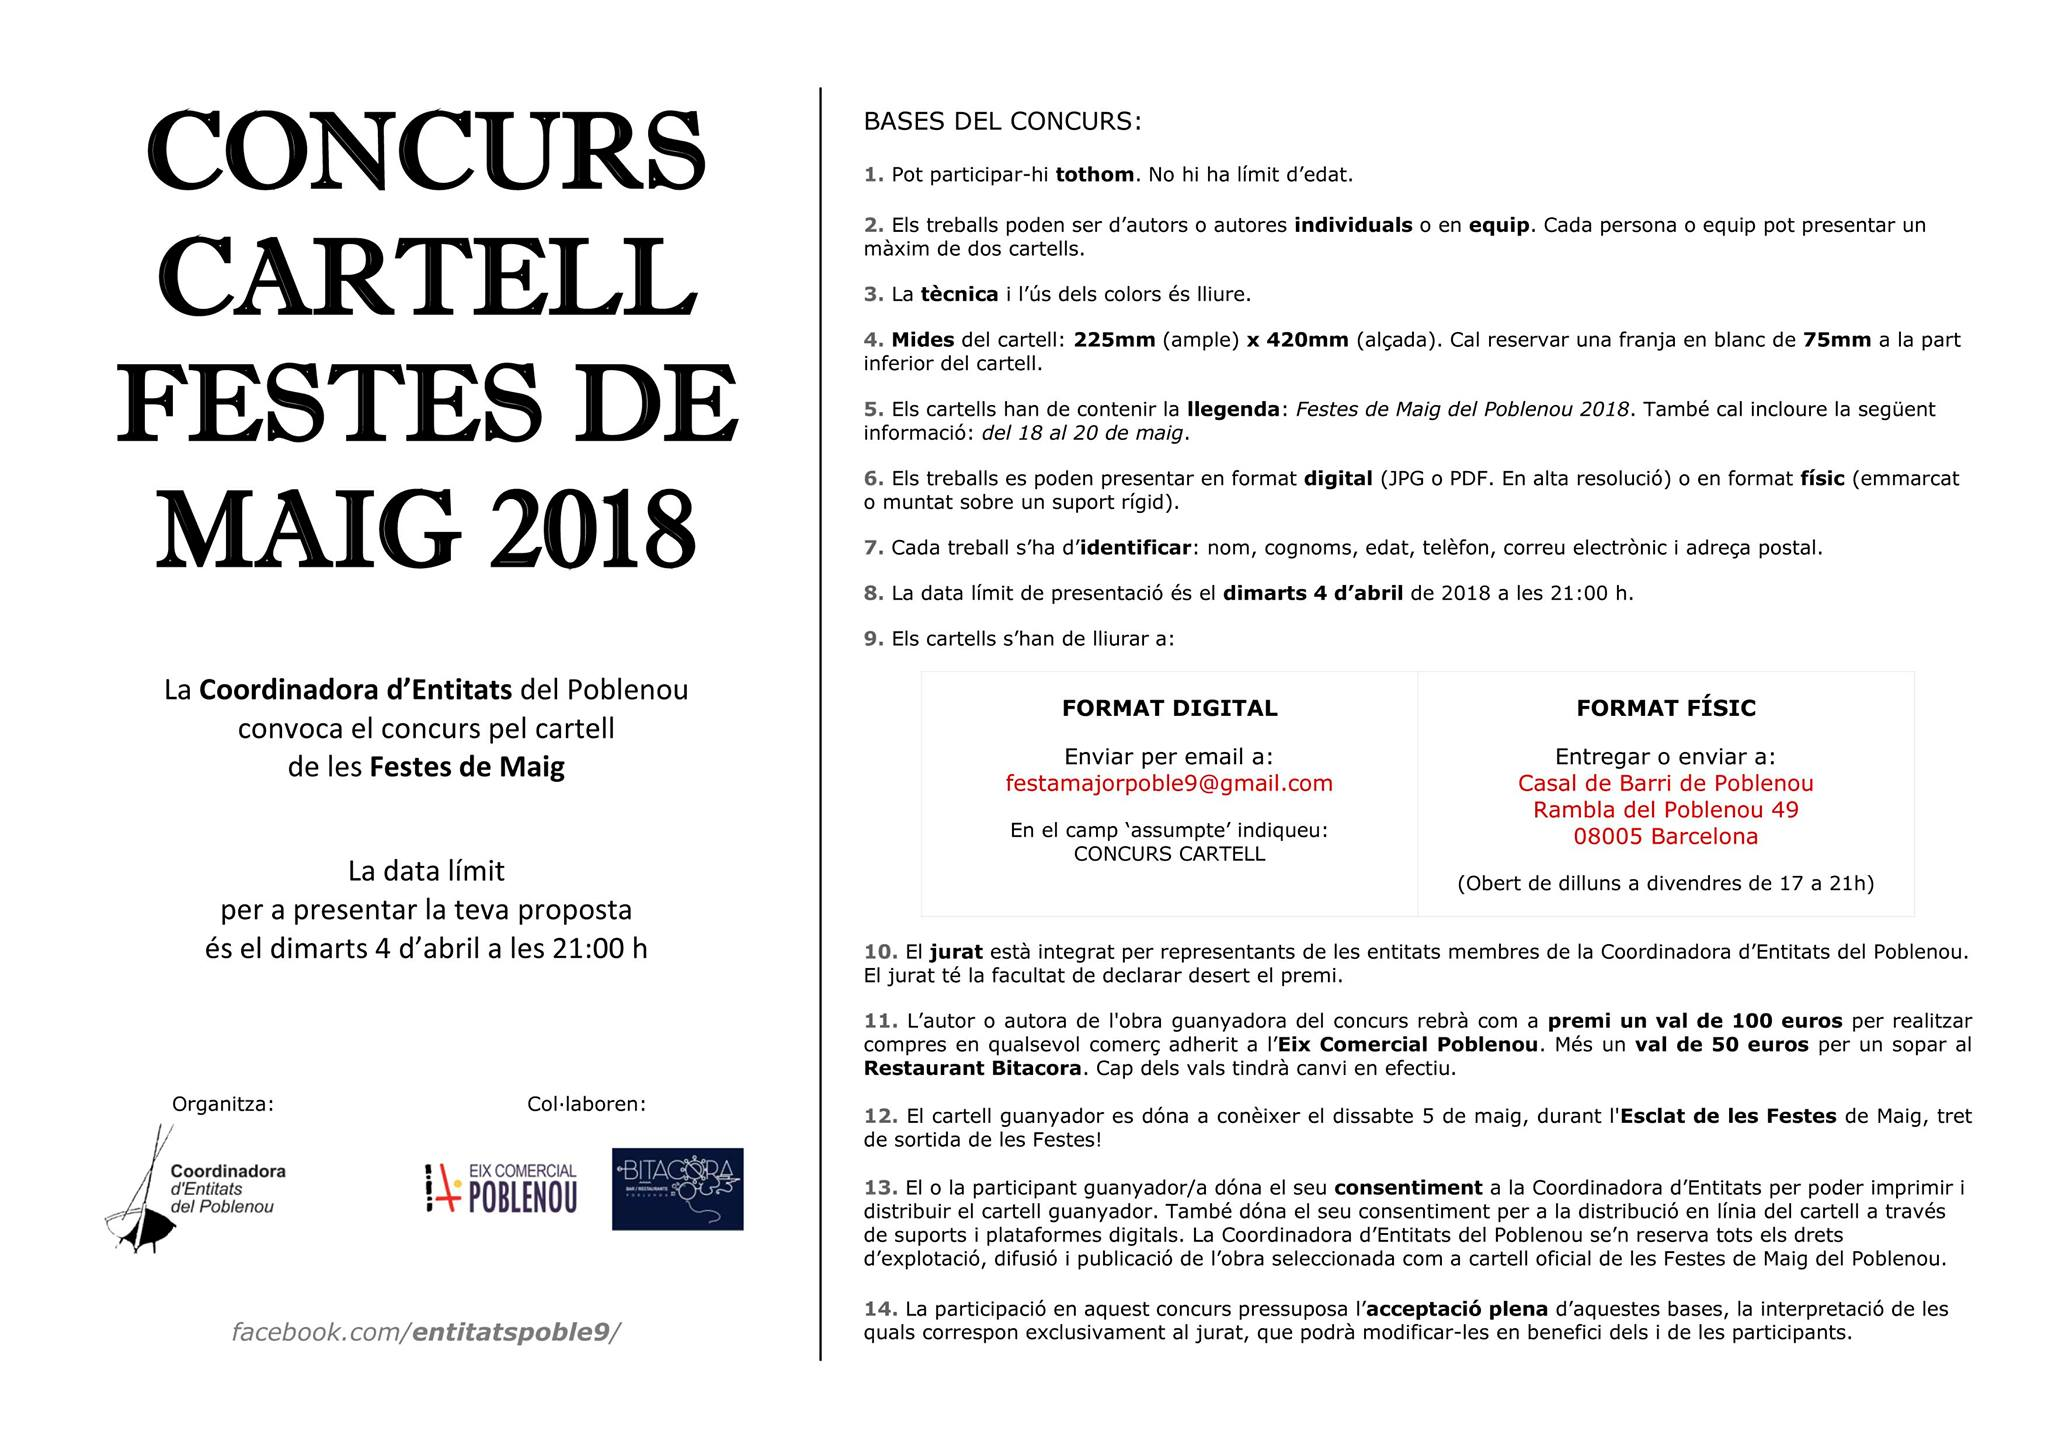 180305 Bases concurs cartell